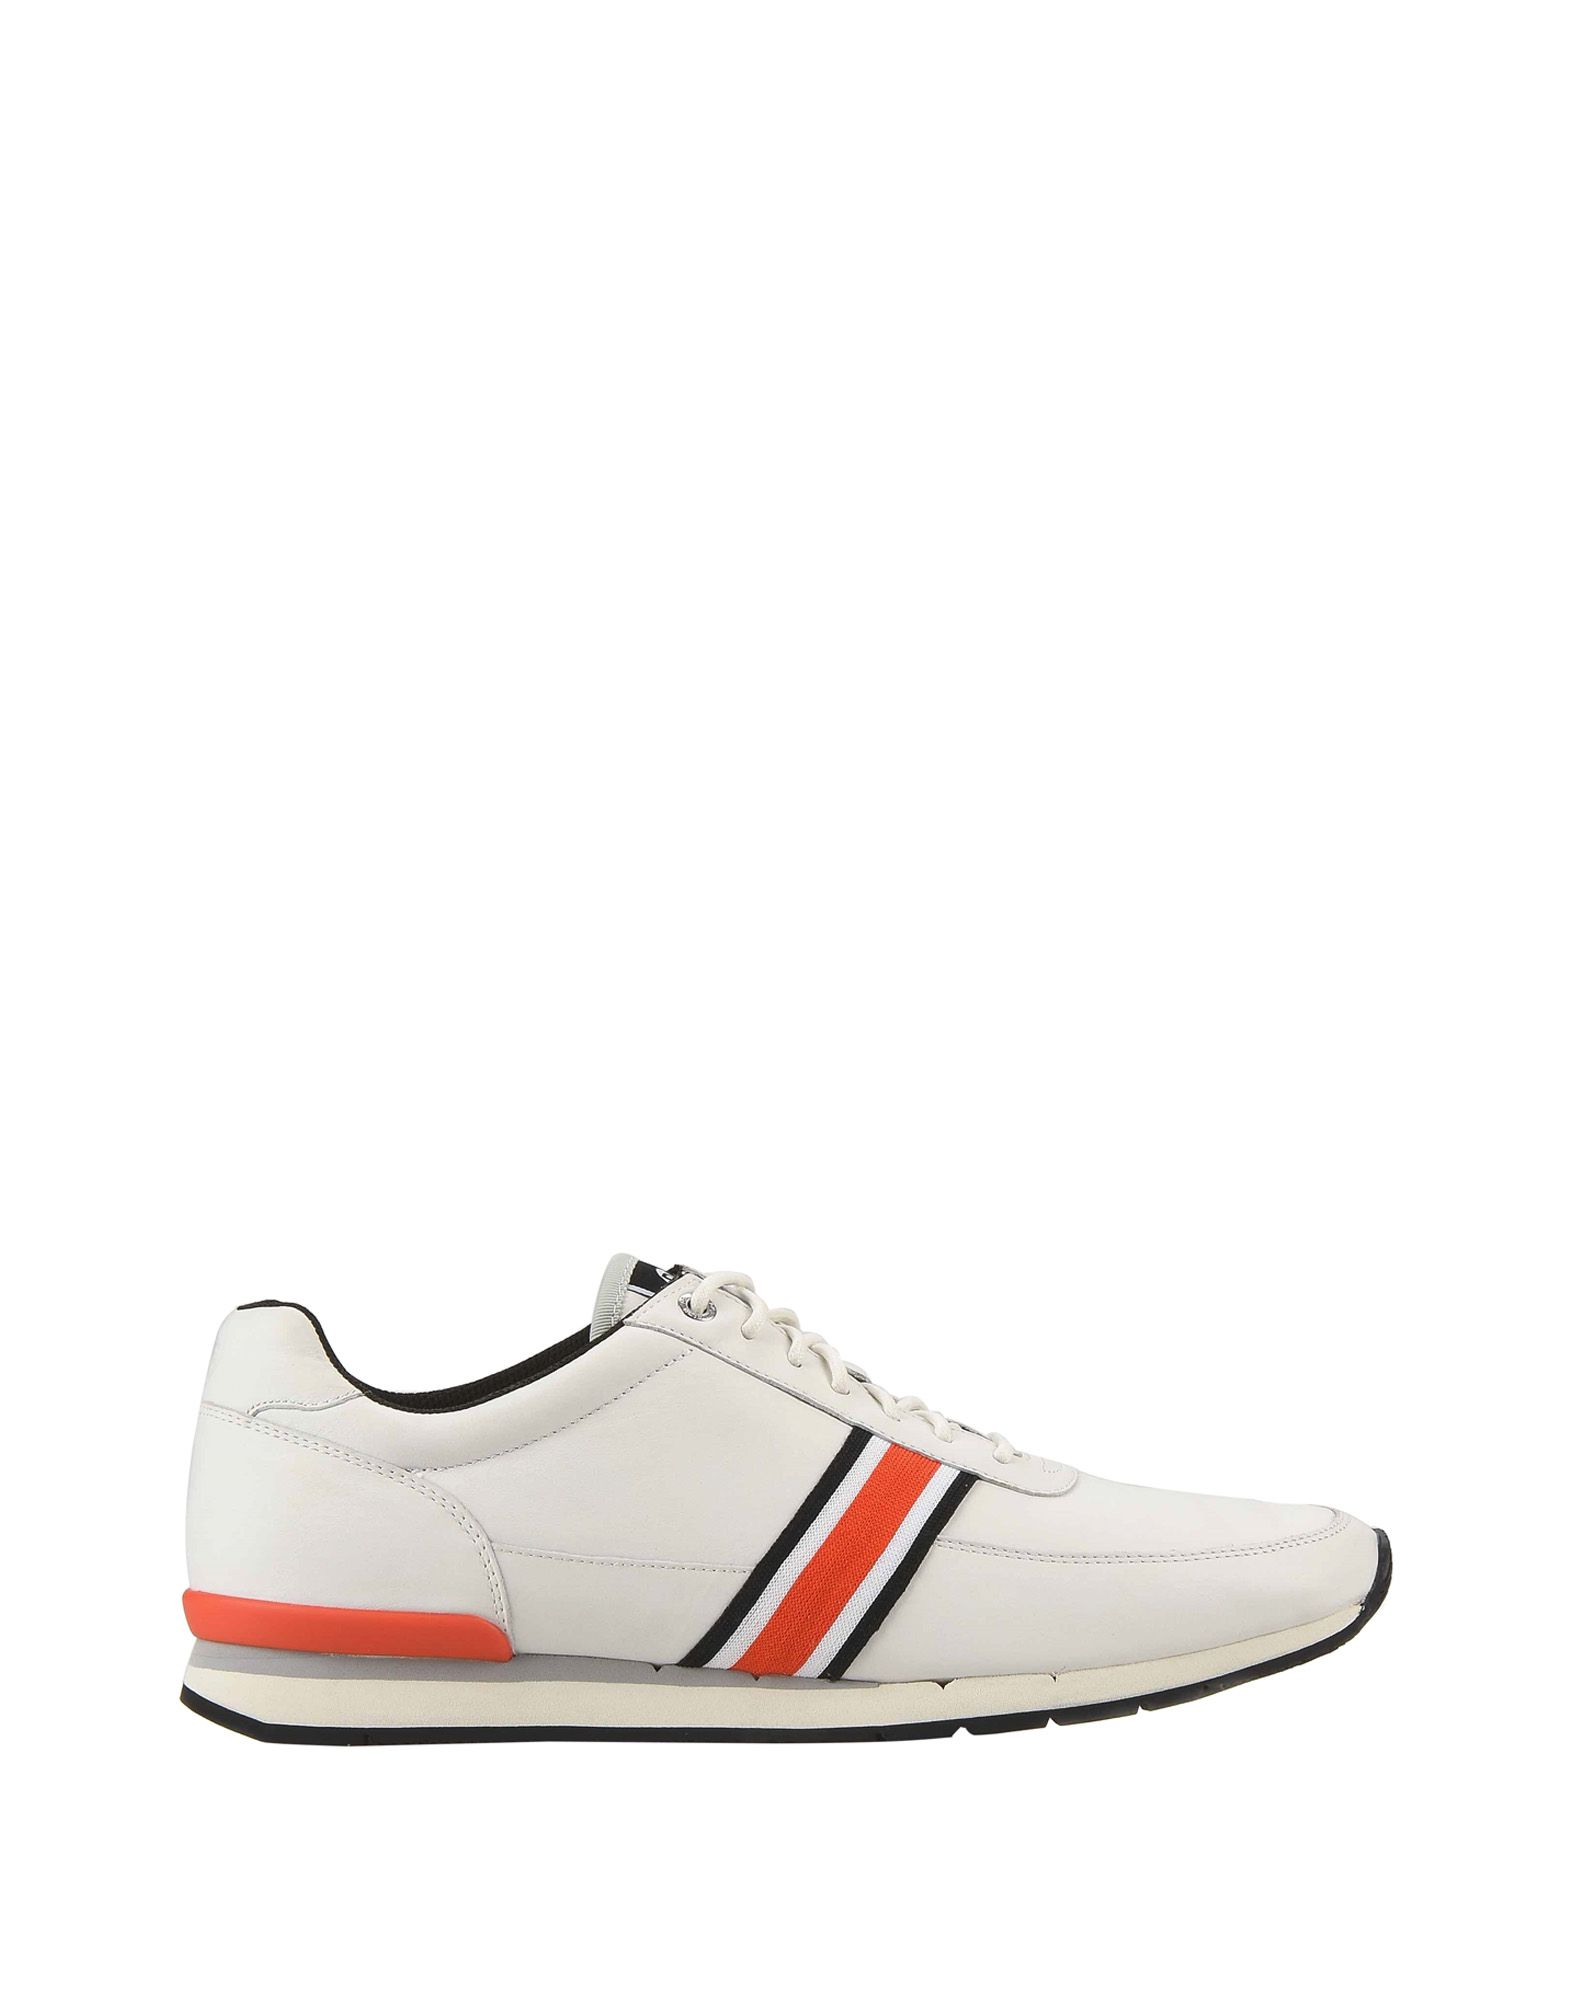 Ps By Paul Smith Mens Shoe Swanson White  11194783XW Gute Qualität beliebte Schuhe